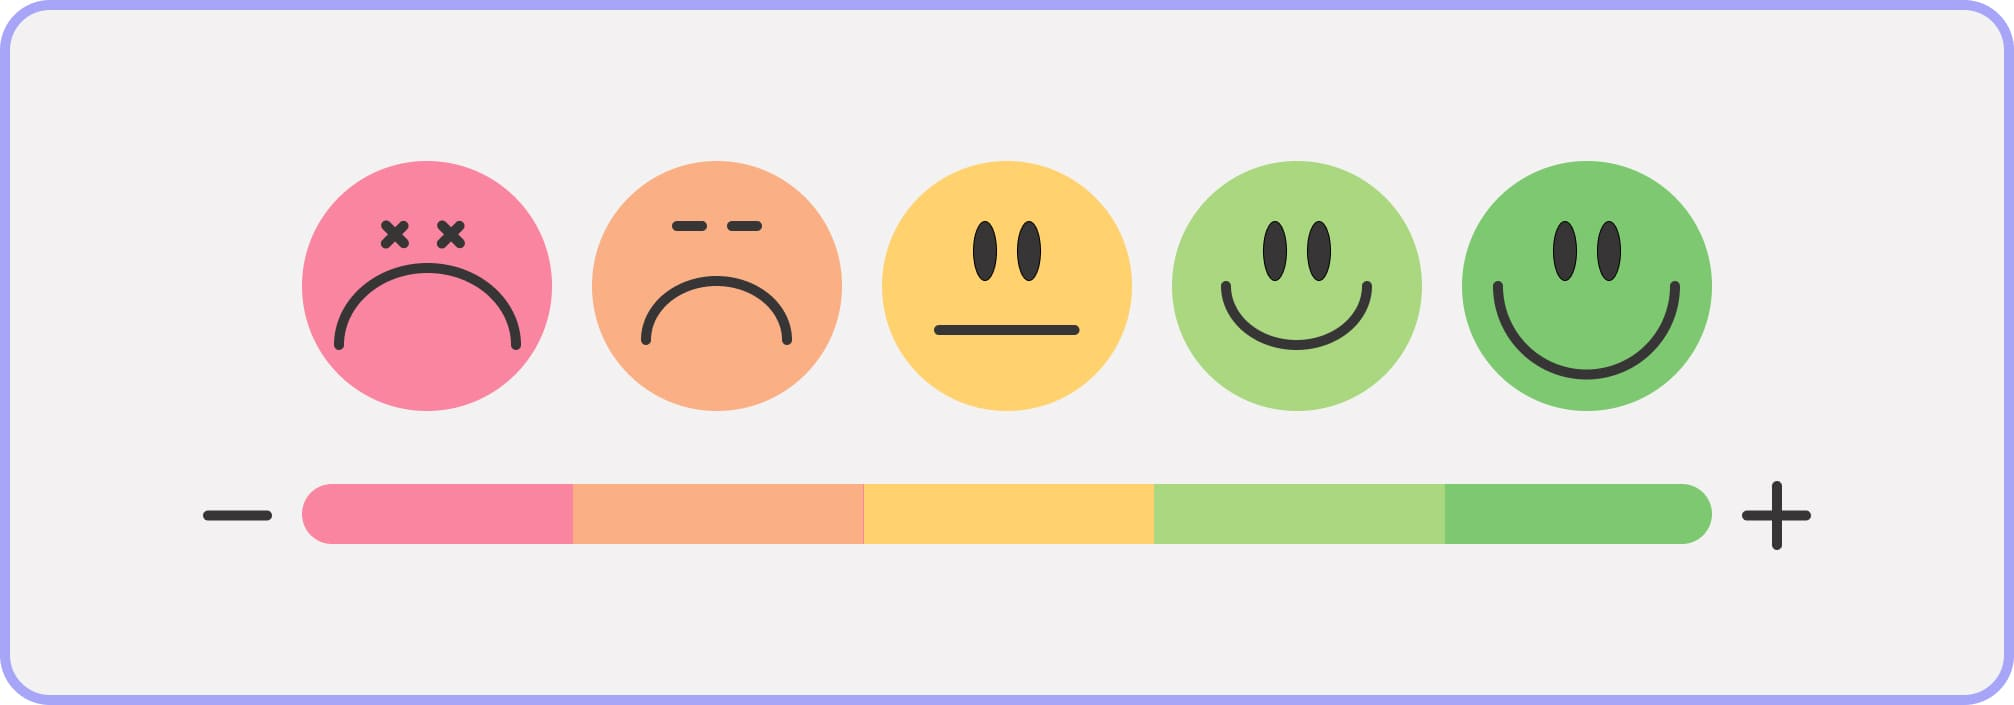 Form for measuring Customer Satisfaction Score